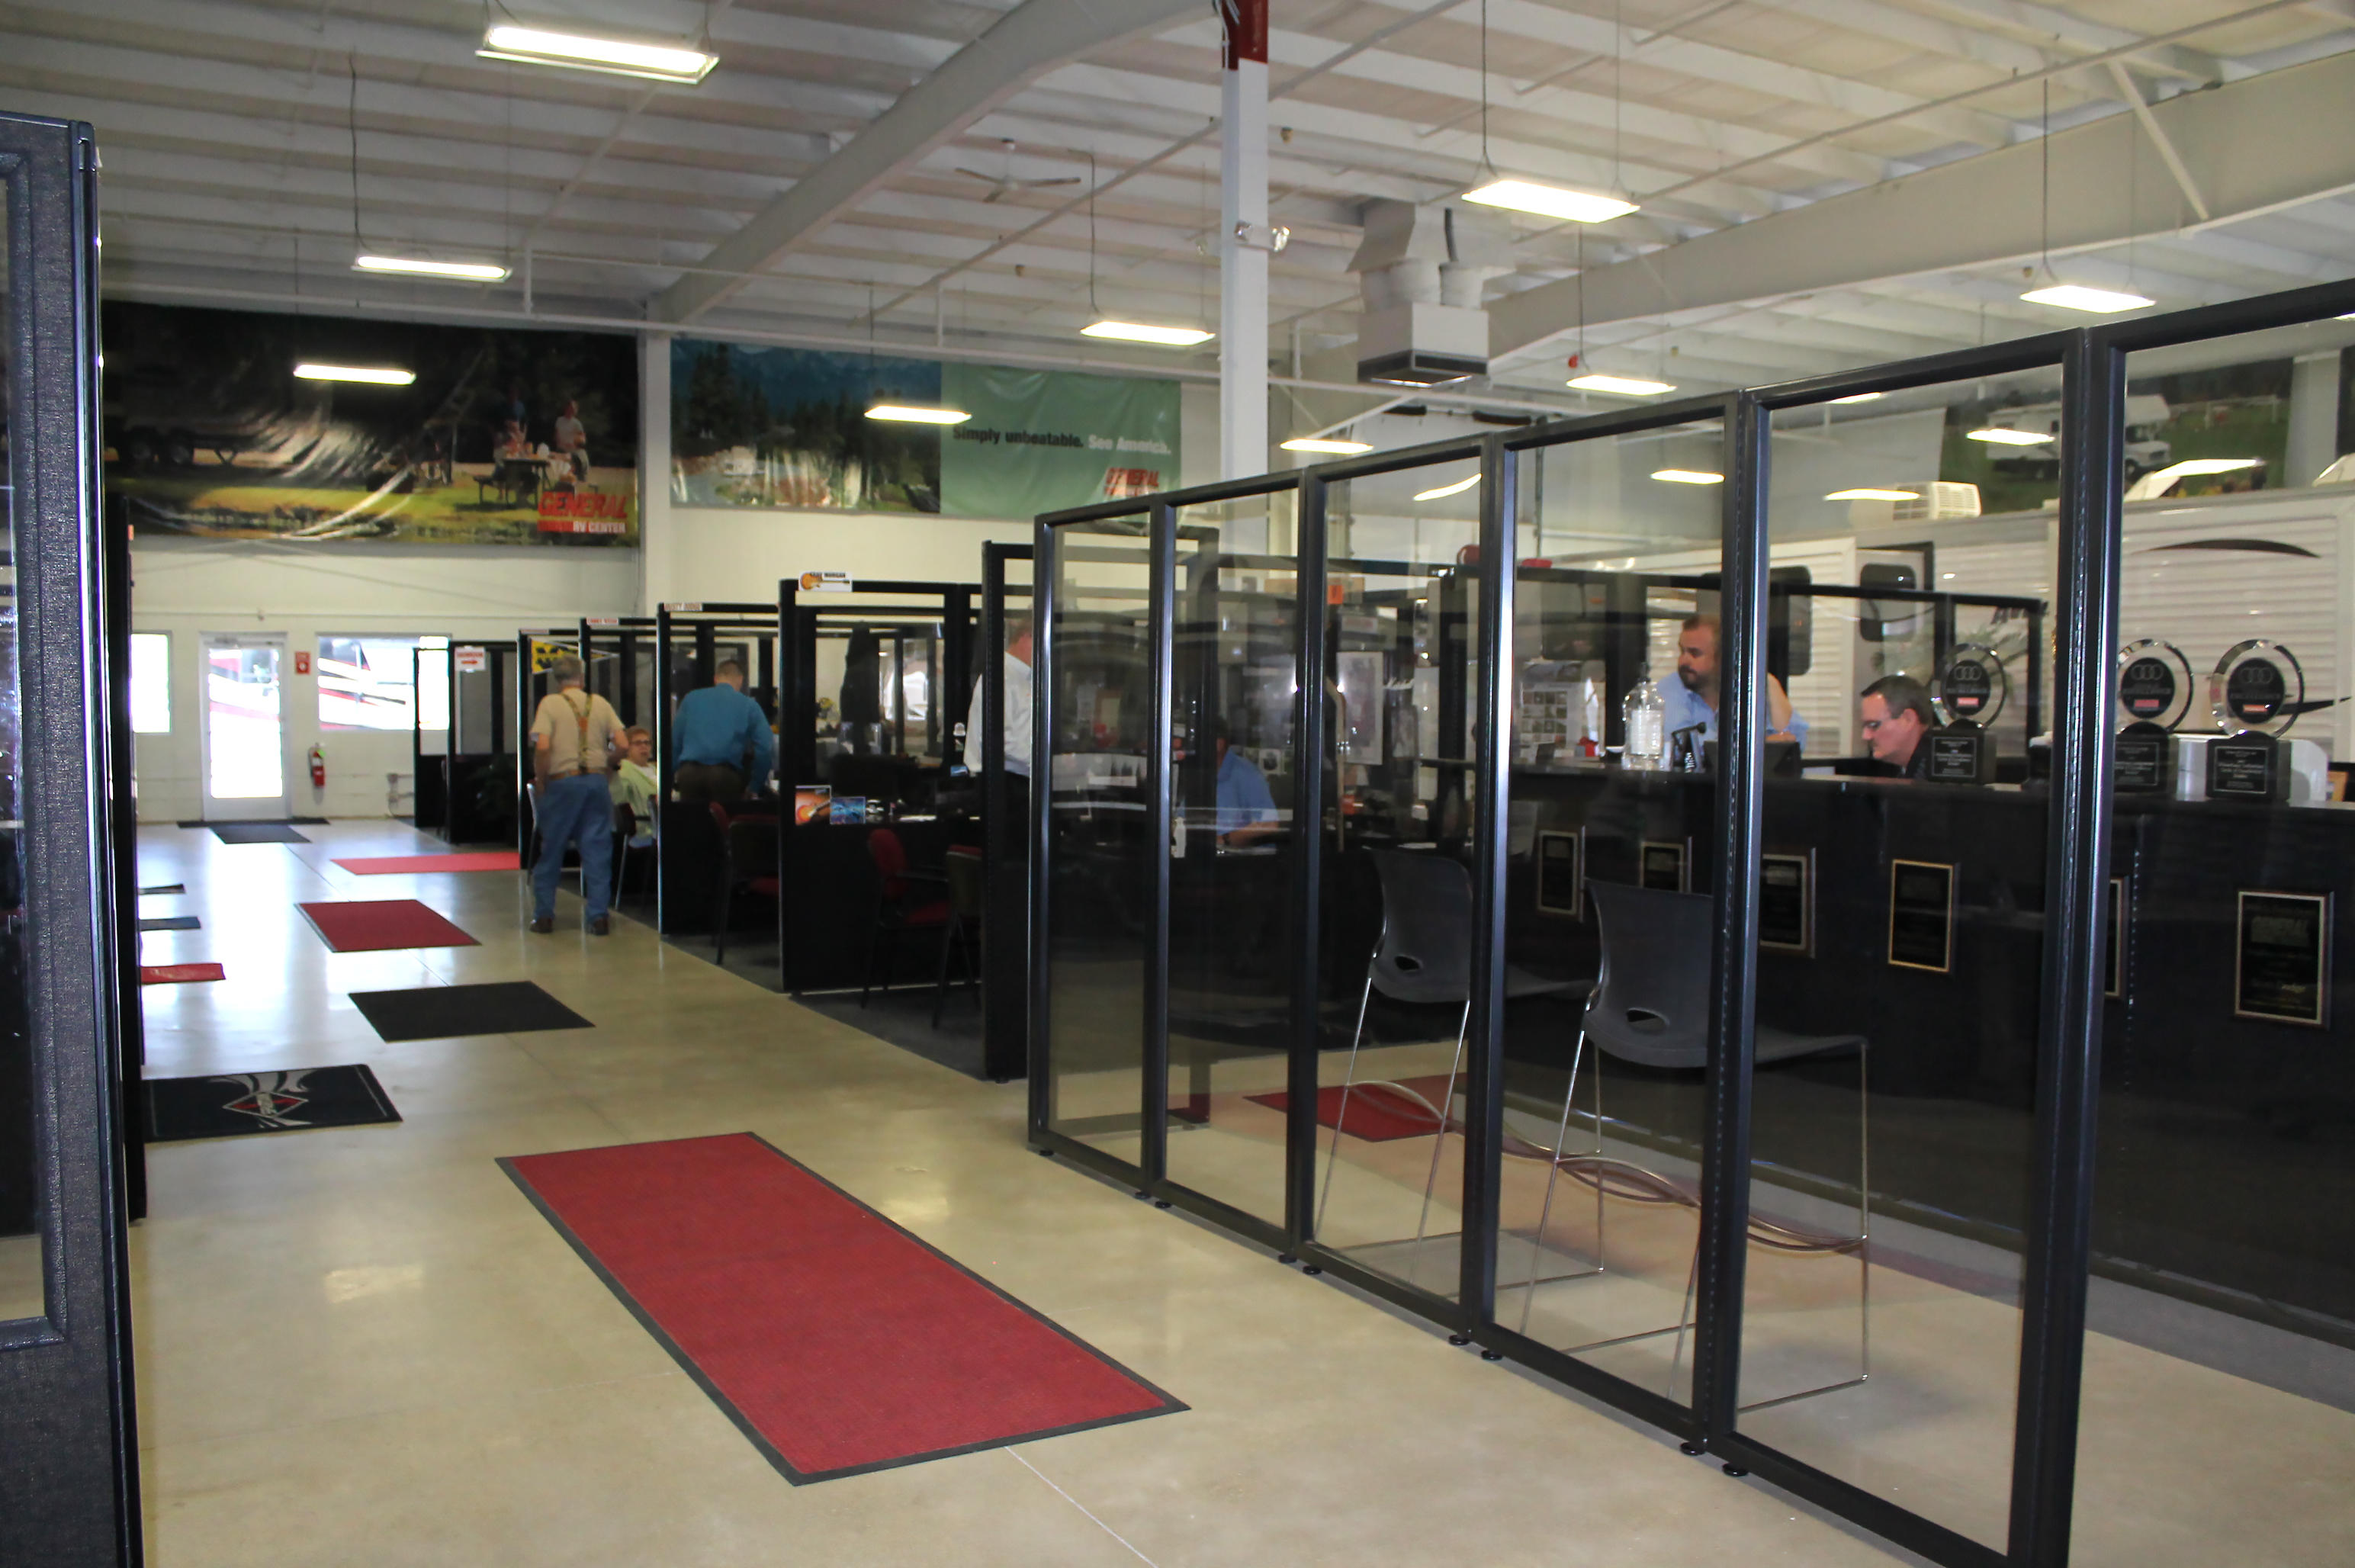 General RV Center image 6